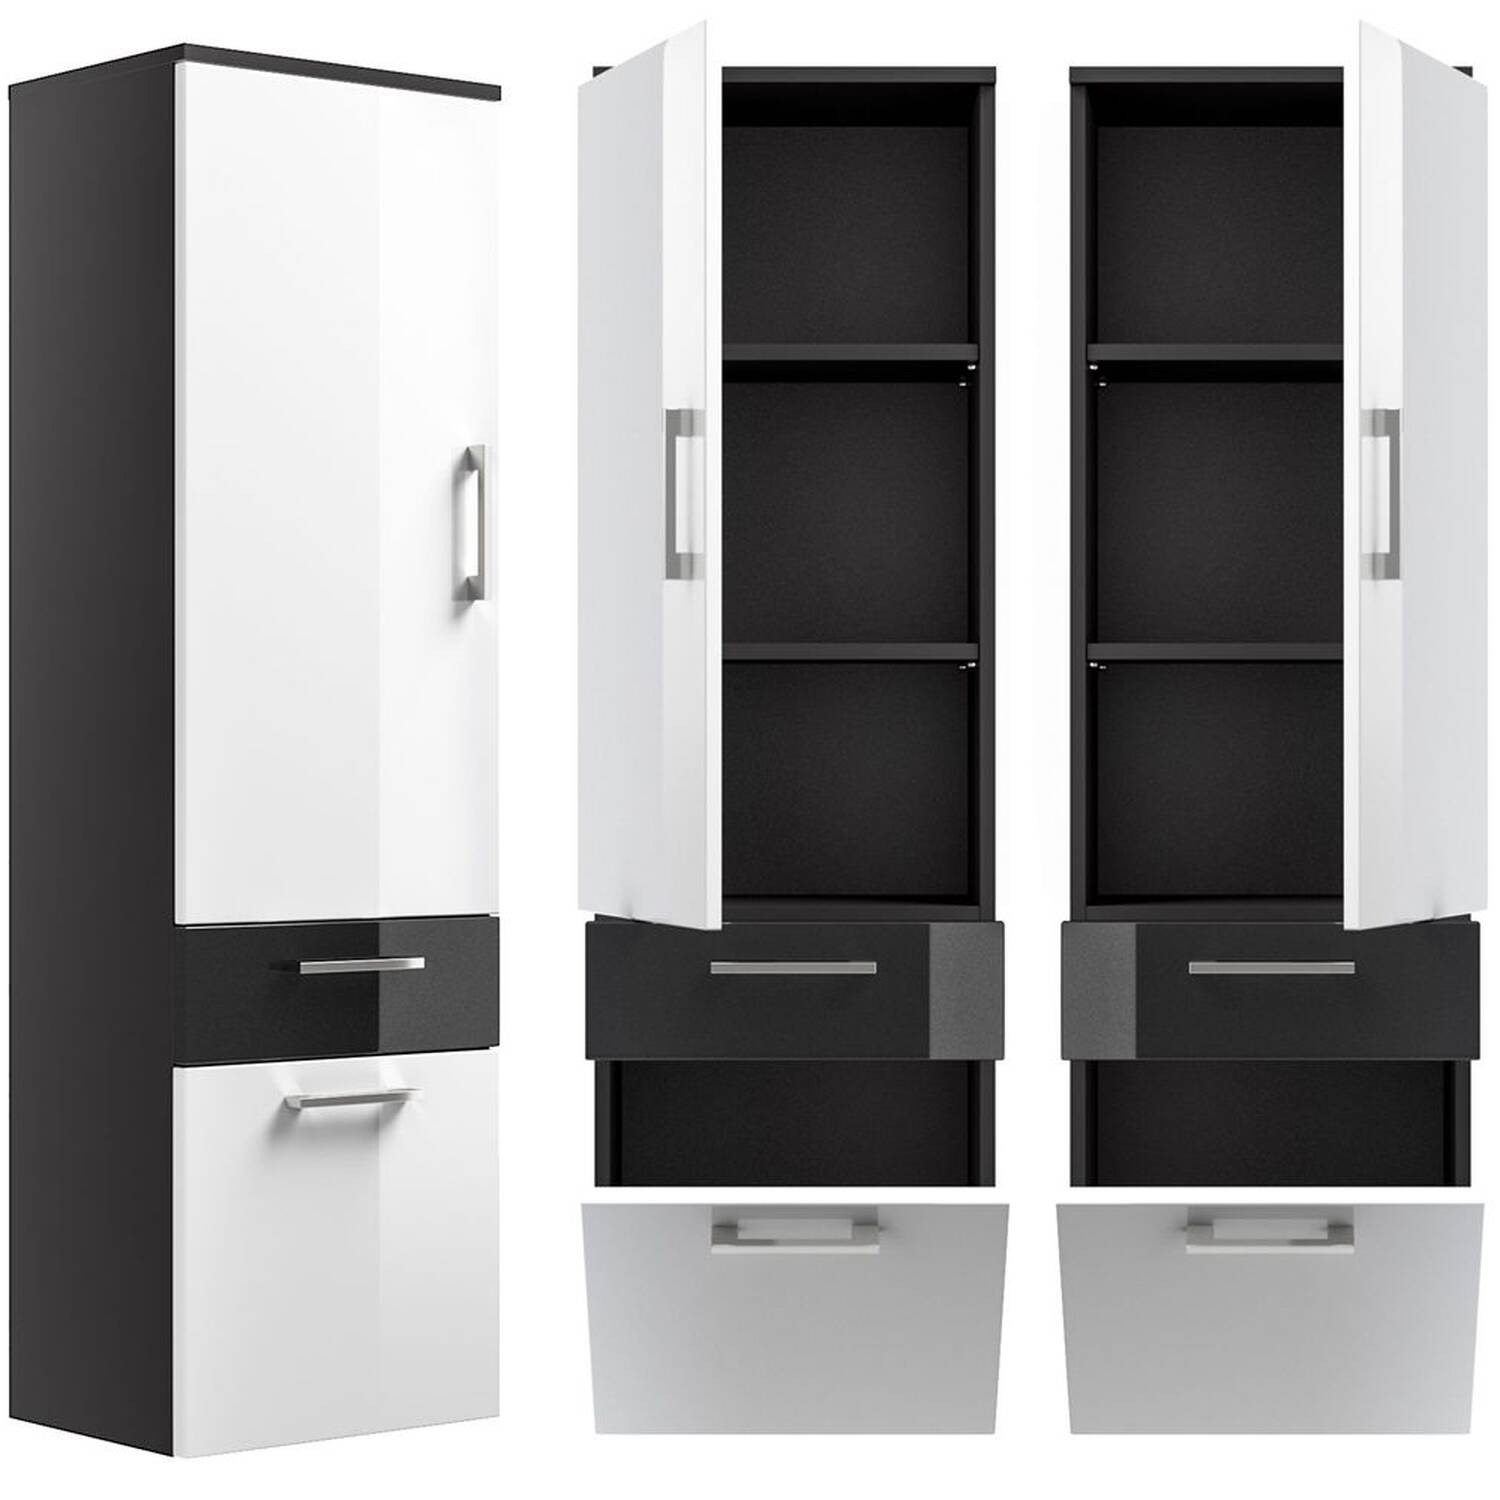 hochschrank rimao 100 hochglanz wei anthrazit. Black Bedroom Furniture Sets. Home Design Ideas